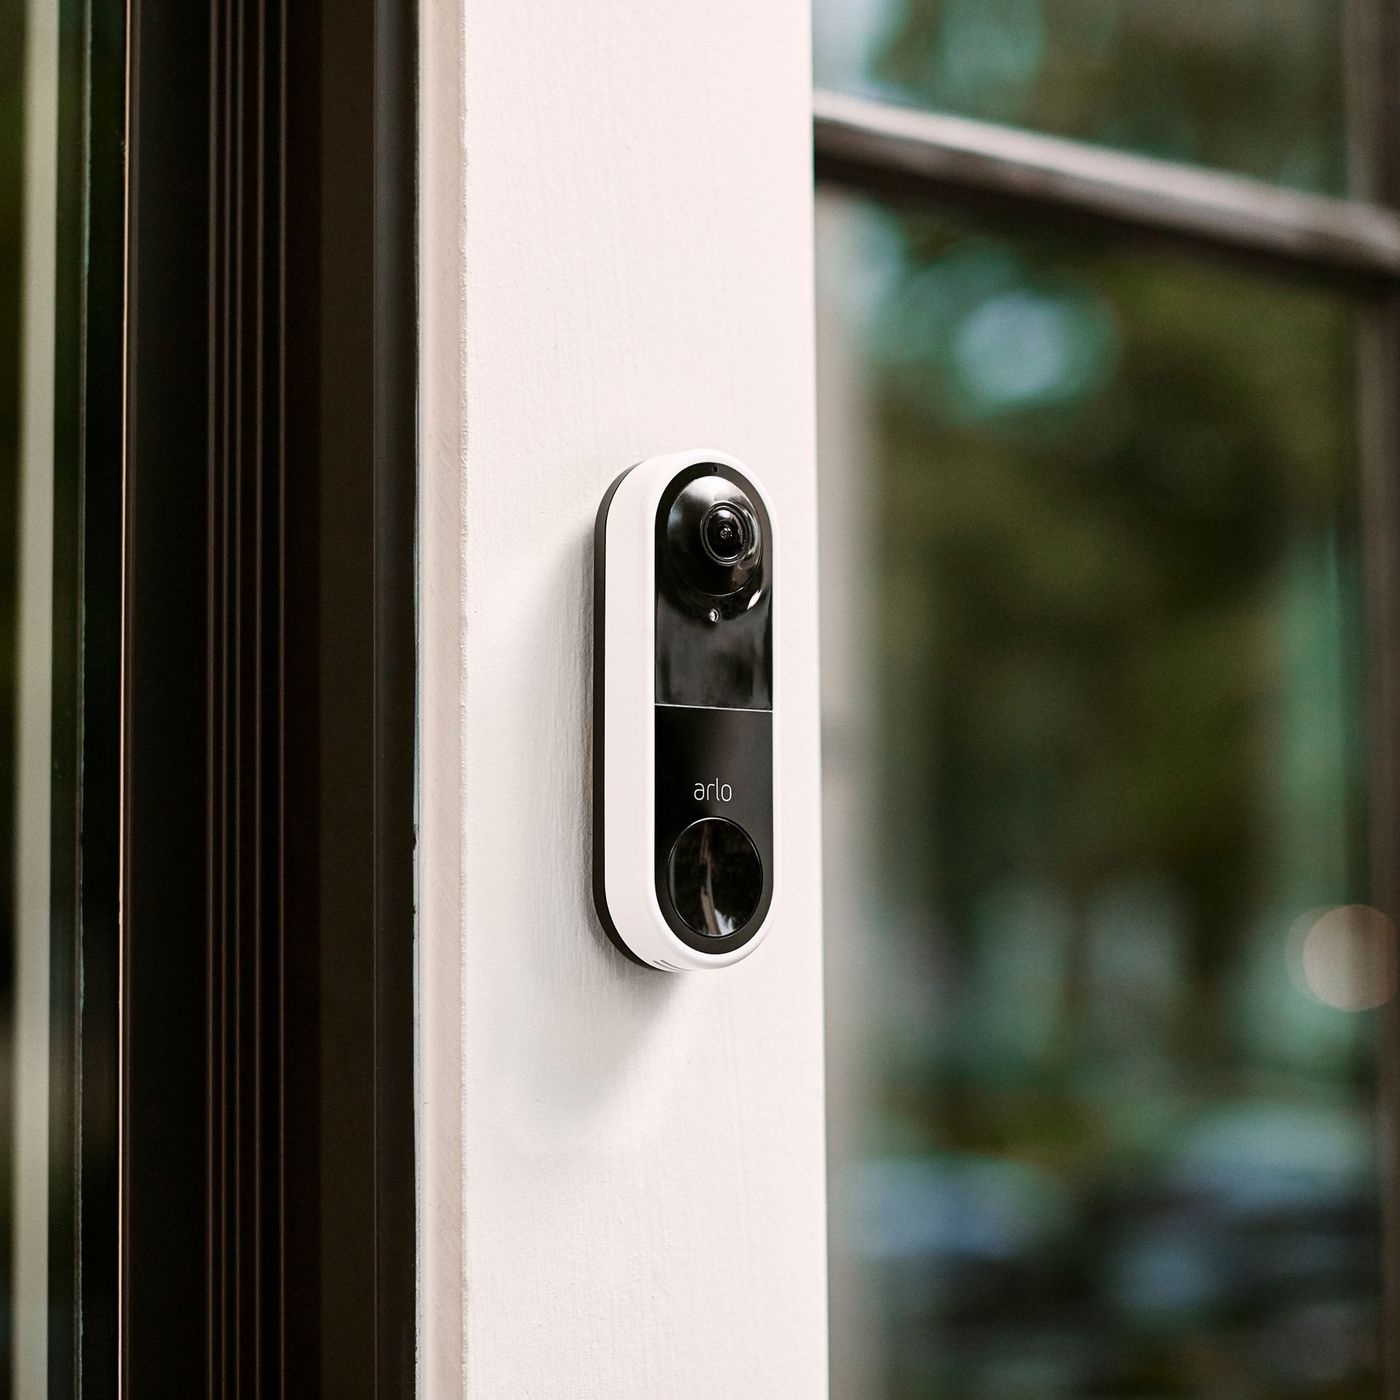 theverge.com - Thomas Ricker - Arlo's Video Doorbell shows both faces and packages